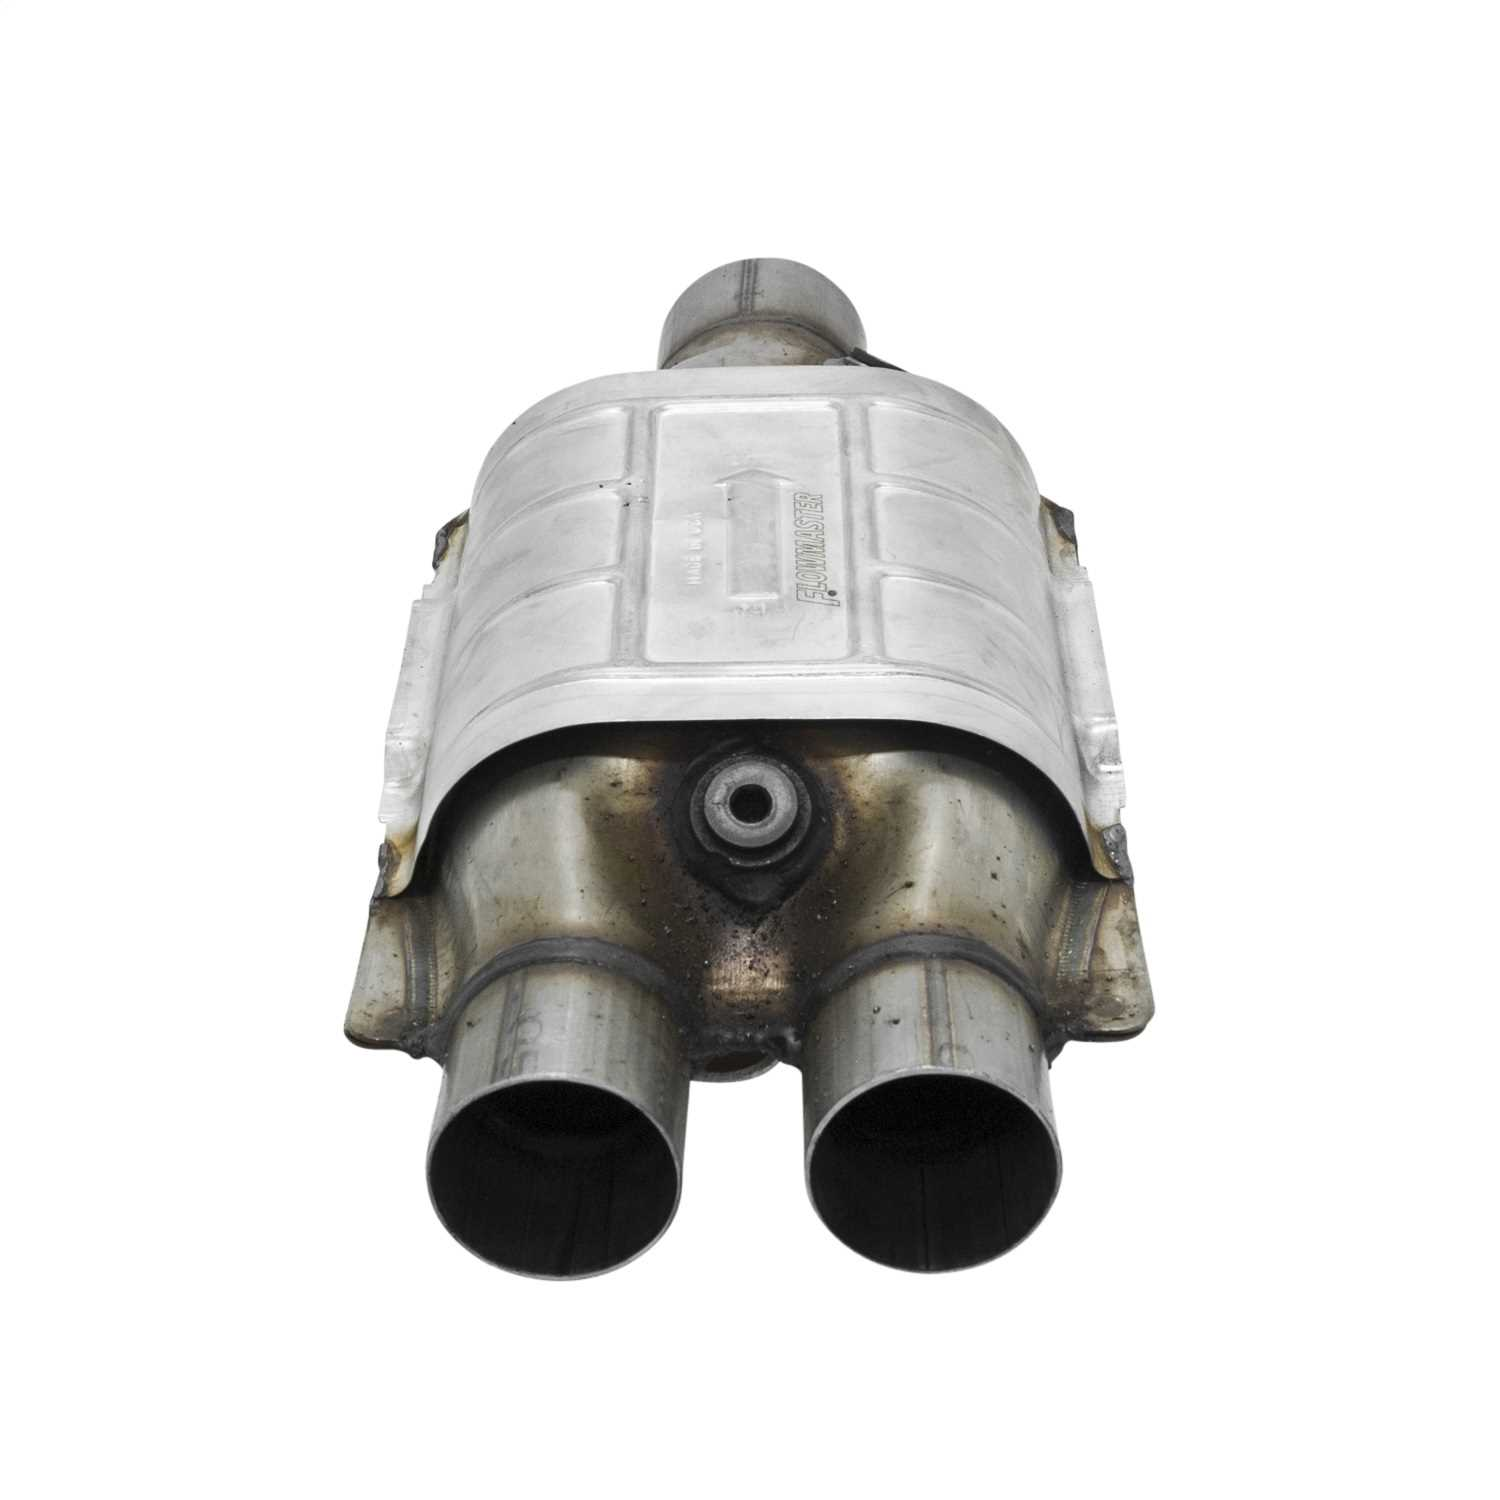 2824220 Flowmaster 49 State Catalytic Converters Universal Catalytic Converter